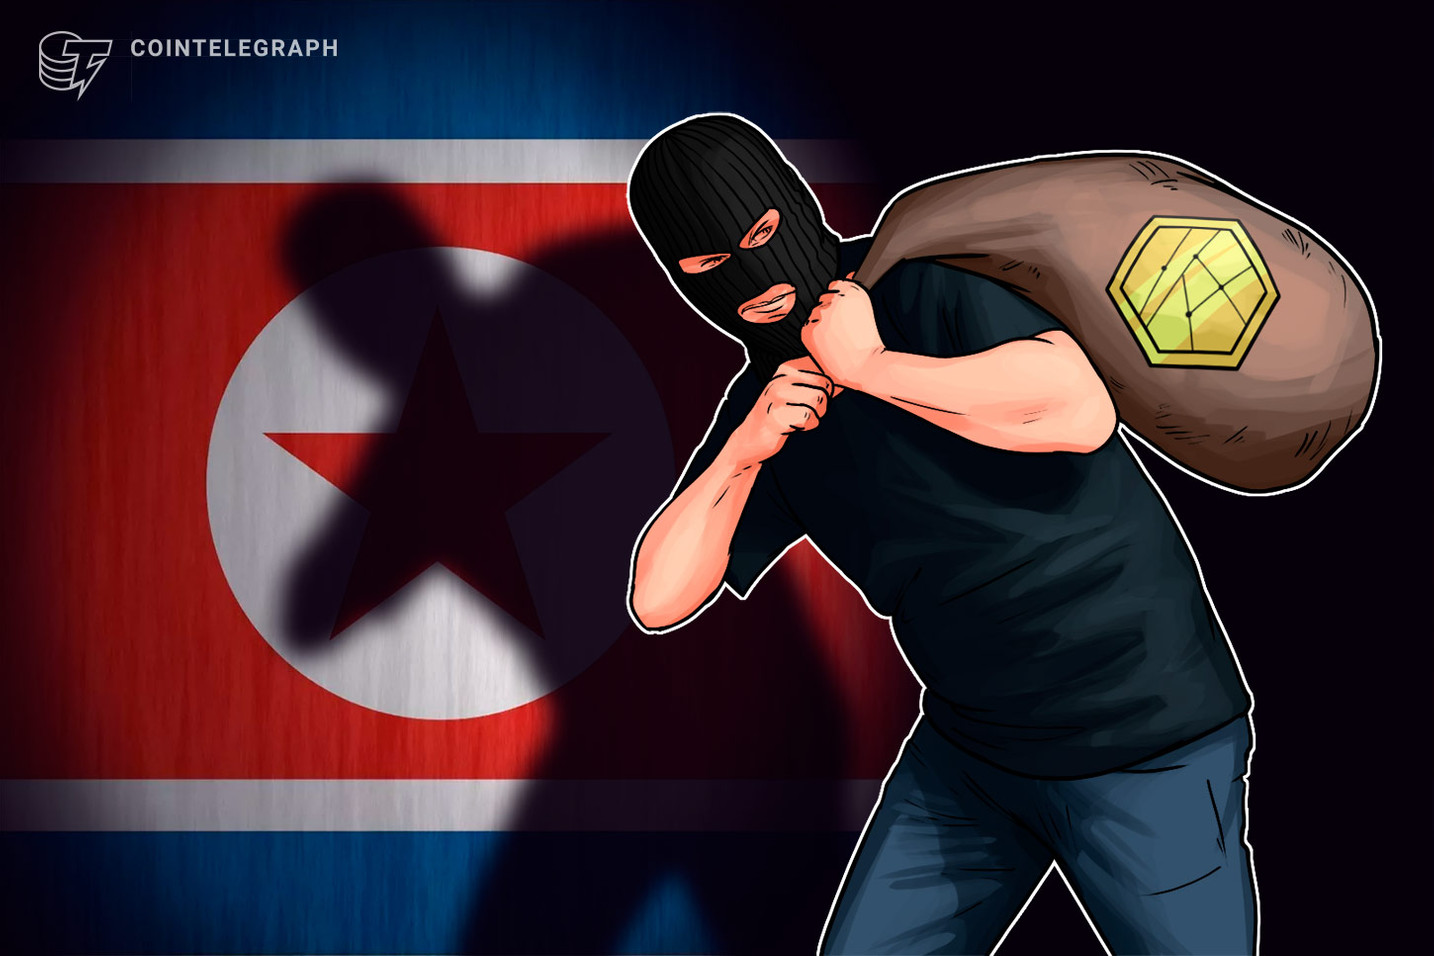 North Korea Stole $2 Billion in Cryptocurrency From Exchanges, Says UN